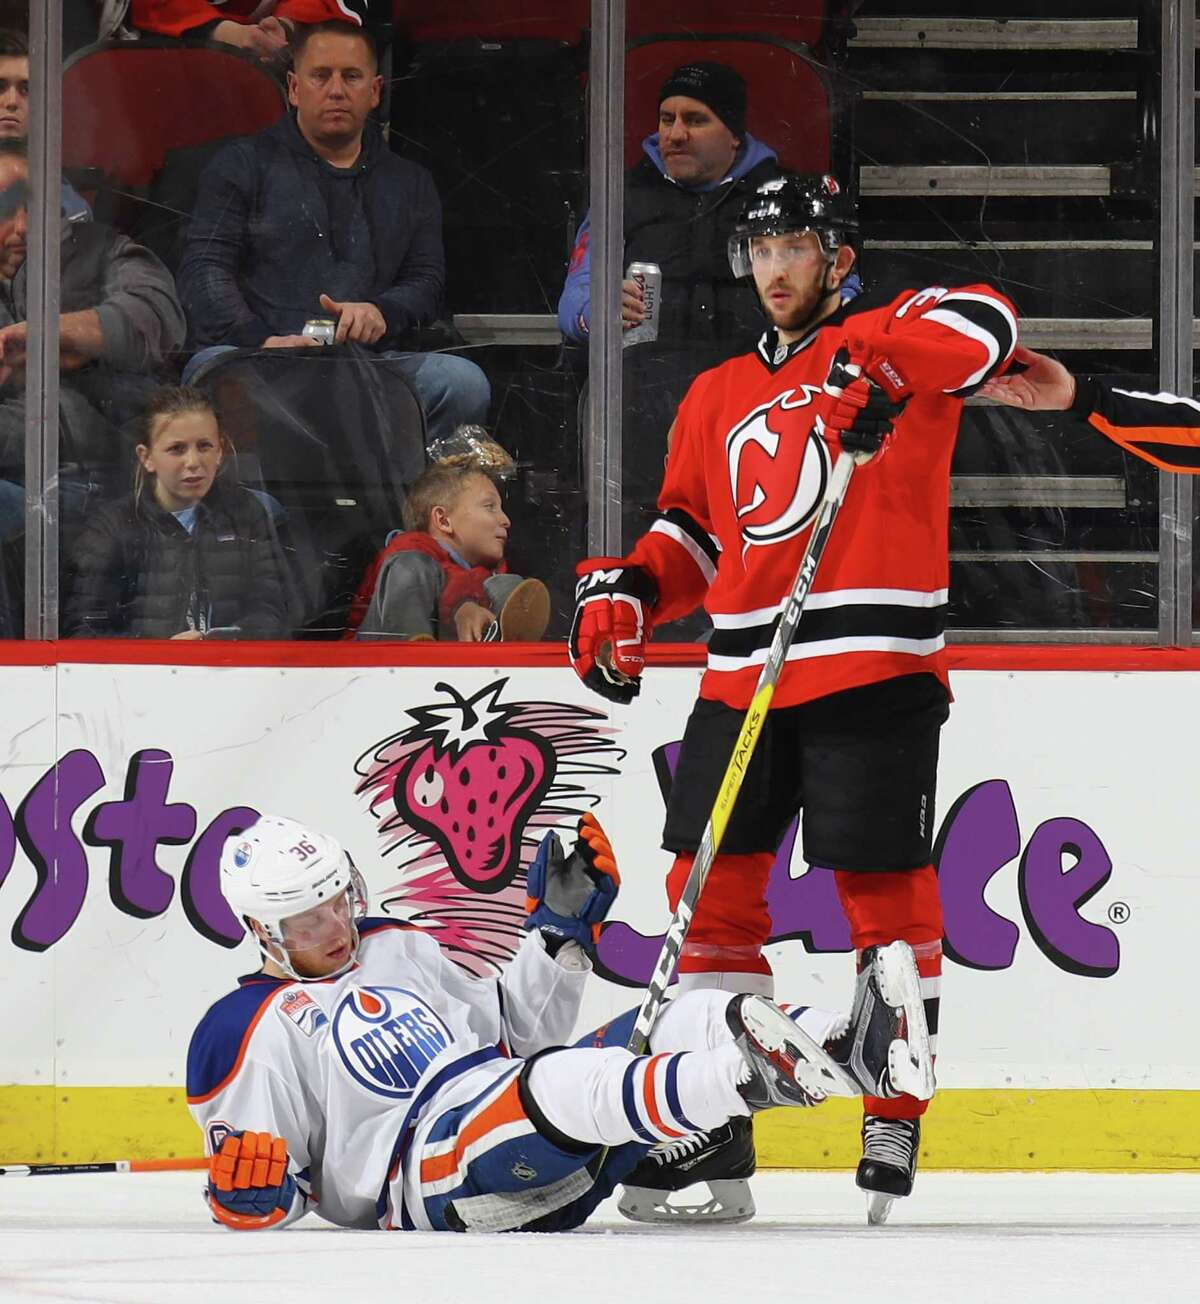 NEWARK, NJ - JANUARY 07: Nick Lappin #36 of the New Jersey Devils trips up Drake Caggiula #36 of the Edmonton Oilers during the second period at the Prudential Center on January 7, 2017 in Newark, New Jersey. (Photo by Bruce Bennett/Getty Images) ORG XMIT: 672872093 ORG XMIT: MER2017010720480658